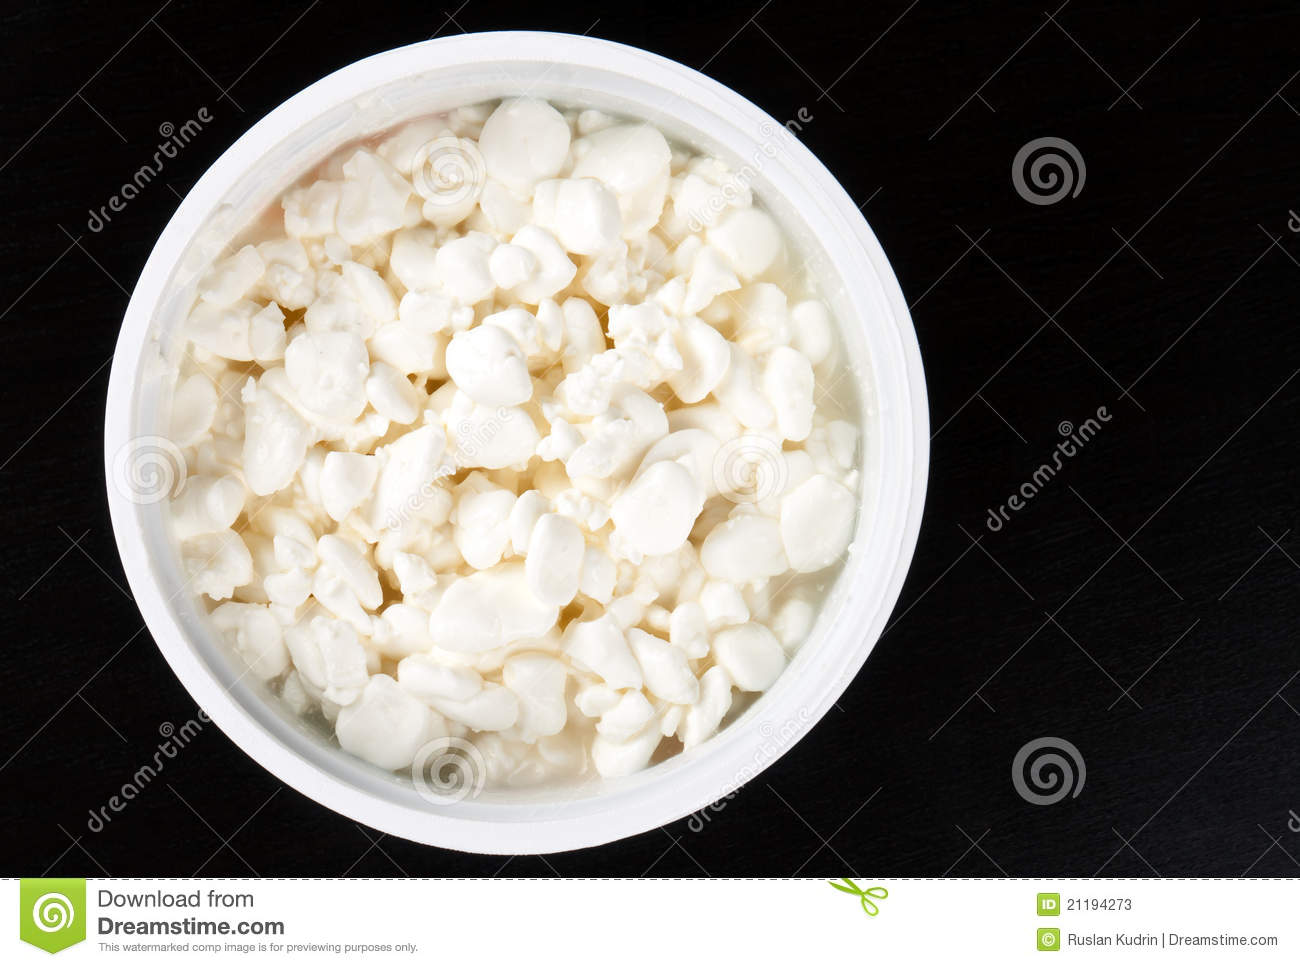 Bank of cottage cheese